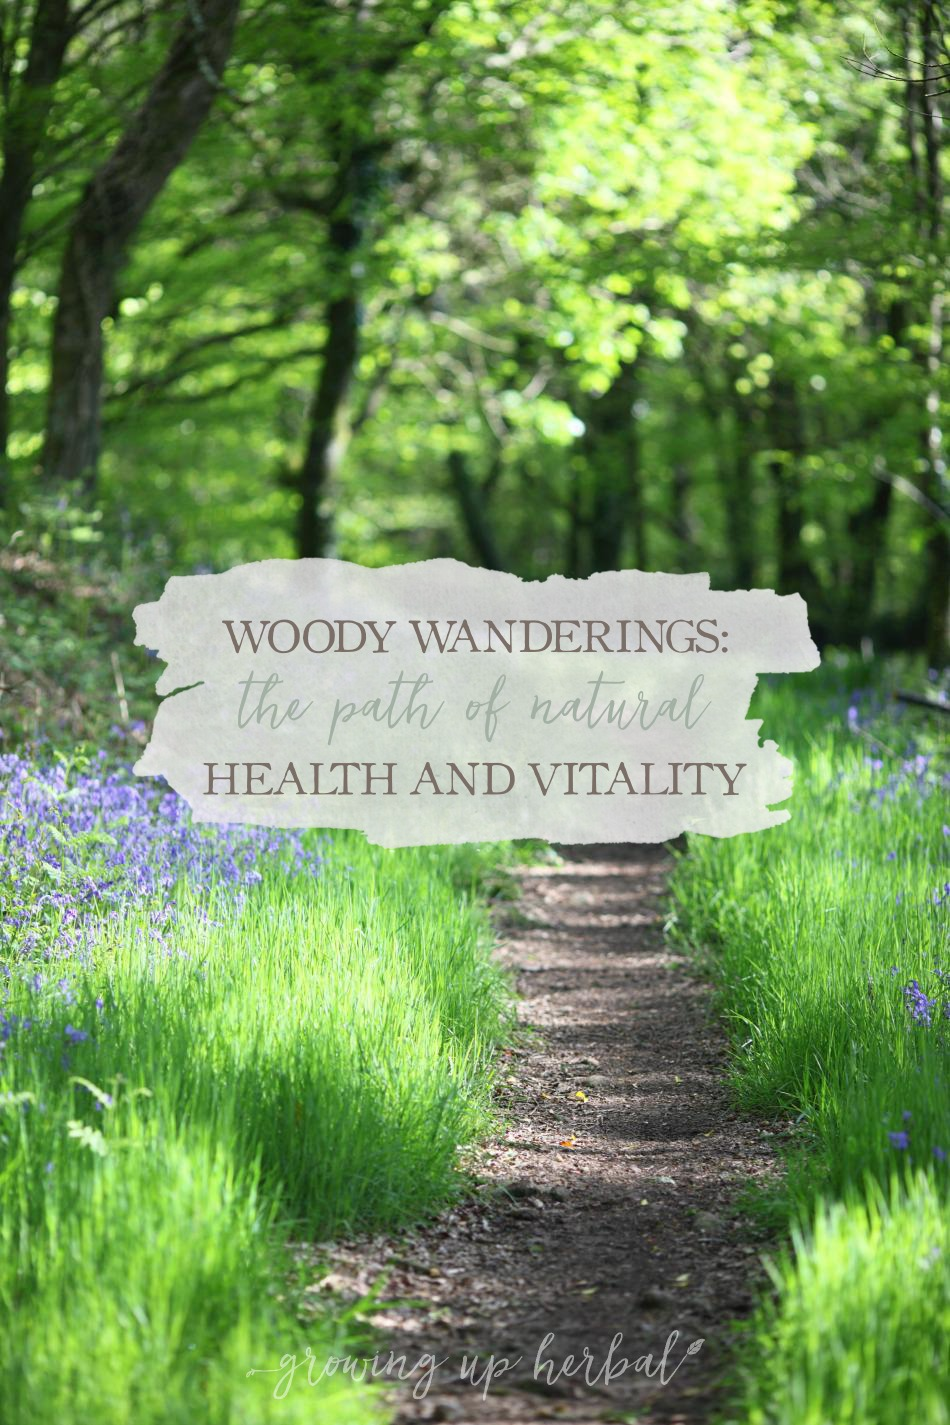 Woody Wanderings: The Path of Natural Living And Vitality | Growing Up Herbal | Curious about what's a natural living journey is like? Come read a fun adventure story of your family getting started on the path of Natural Health and Vitality!